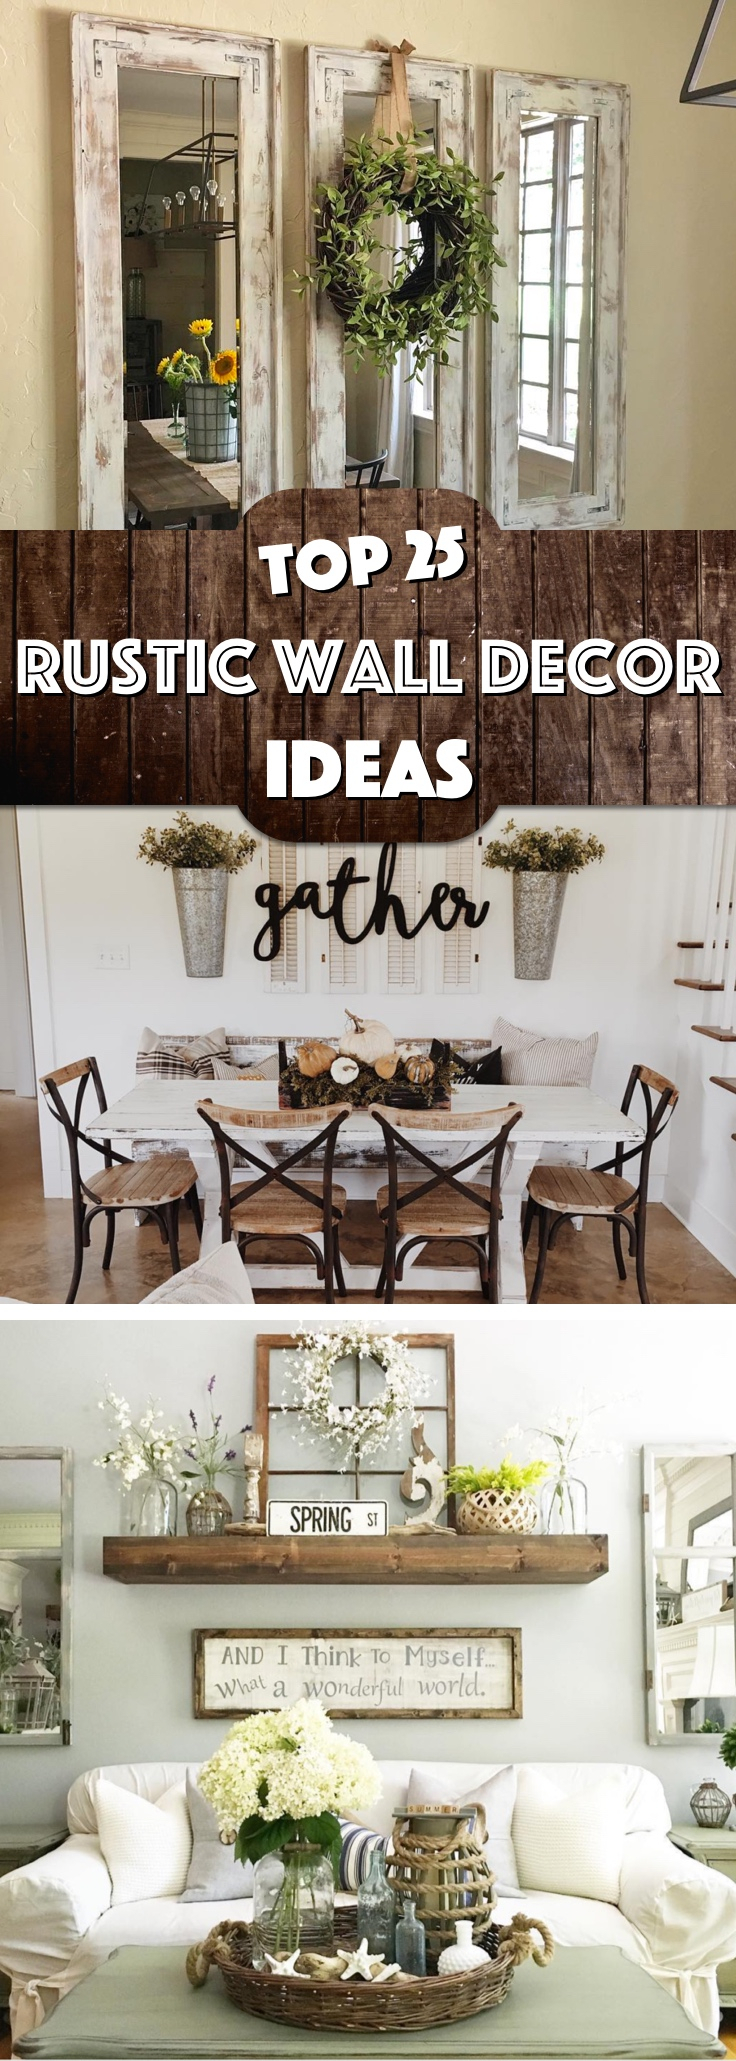 25 Must-Try Rustic Wall Decor Ideas Featuring The Most intended for Wonderful World Wall Decor (Image 1 of 30)